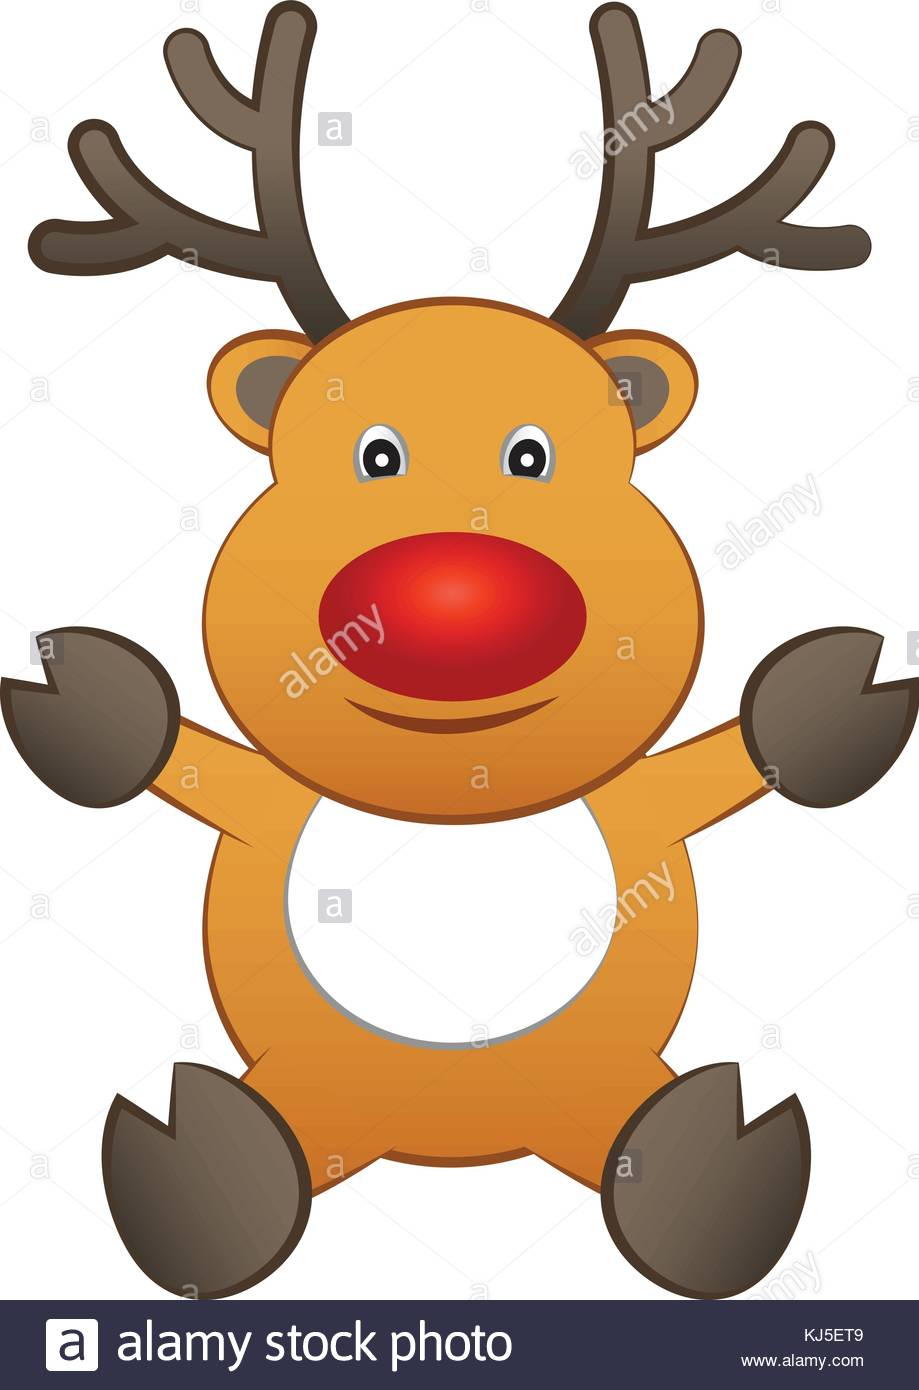 Smiling cartoon brown reindeer sit and raise hand to show season smiling cartoon brown reindeer sit and raise hand to show season of greeting and happy christmasvector illustration kristyandbryce Image collections